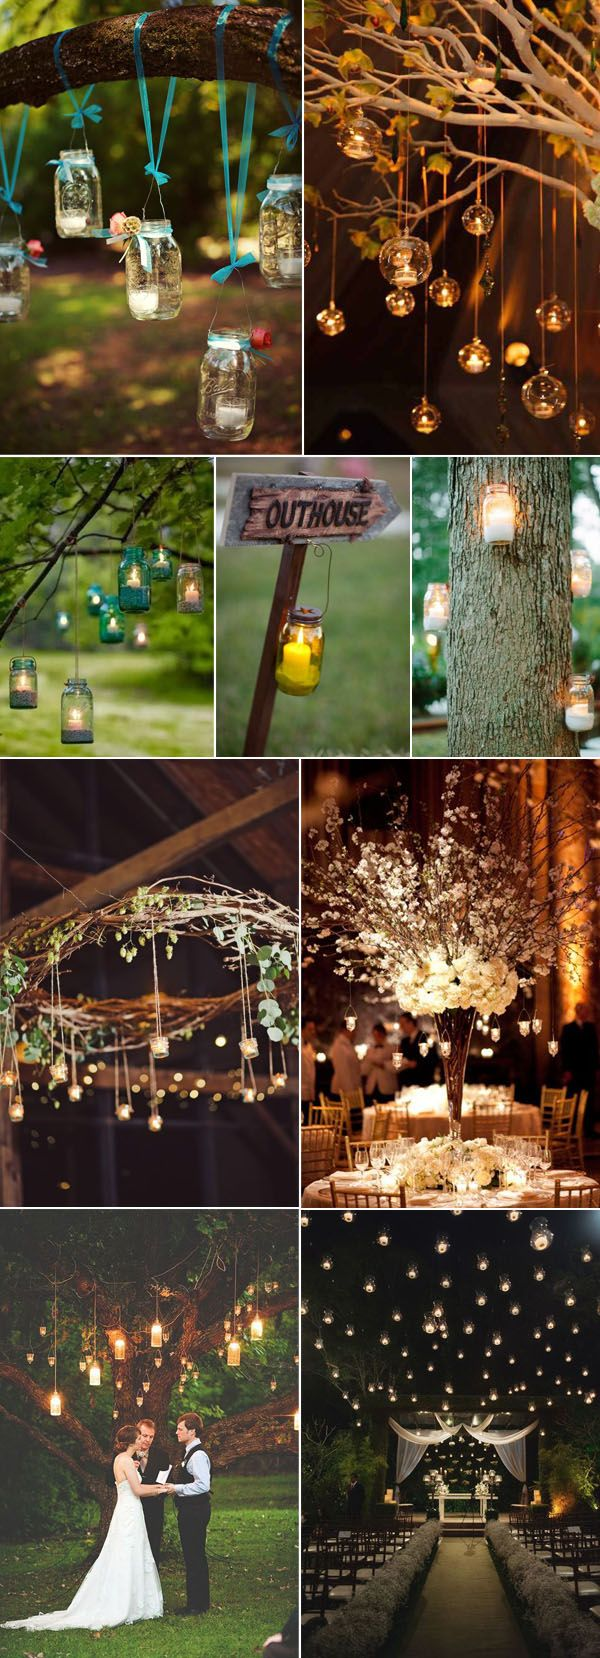 50+ Fancy Candlelight Ideas to Add Romance to Your Weddings ...